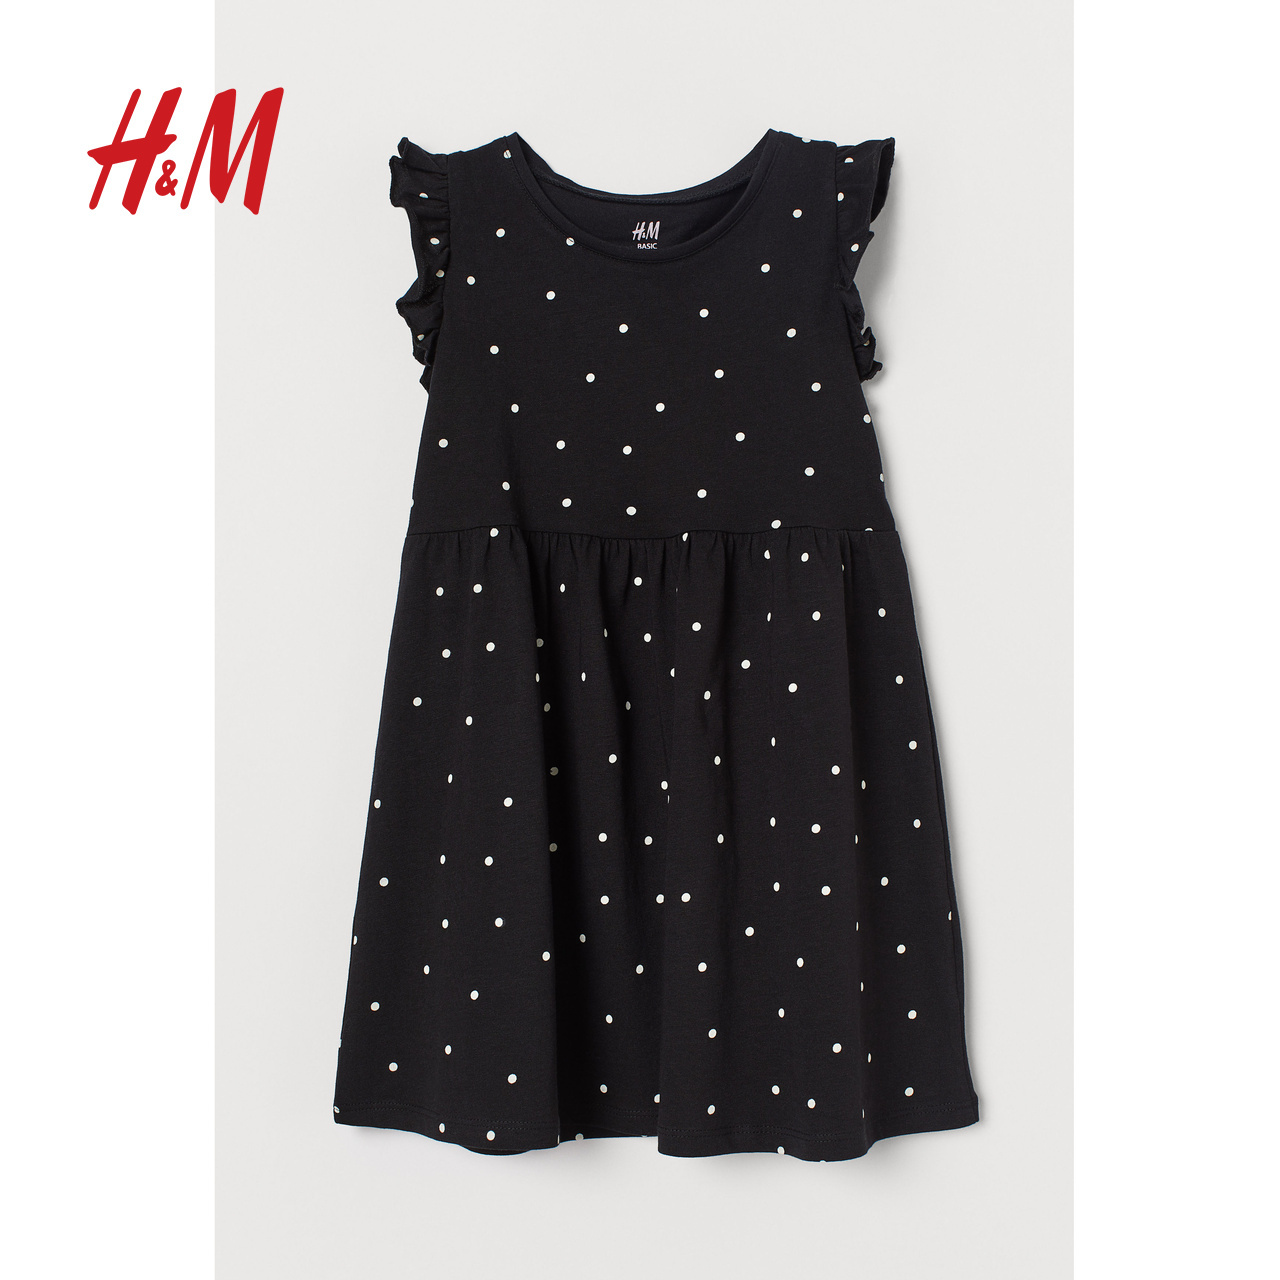 HM children's dress girl's dress spring dress 2020 women's new lovely pure cotton Childrens dress 0620197